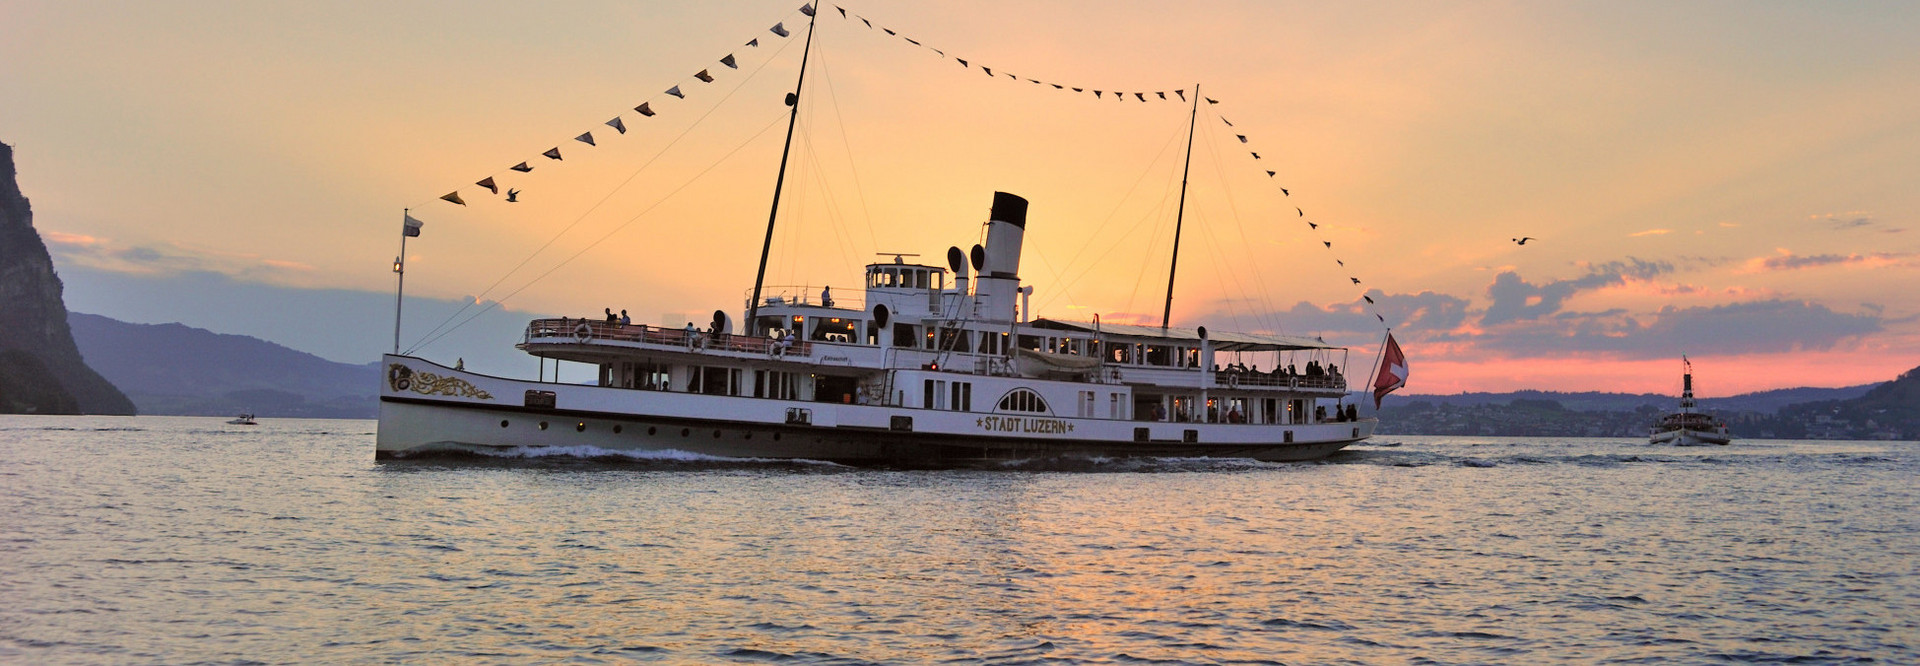 The steamship Stadt Luzern sideways during the trip. The sun sets behind the ship.